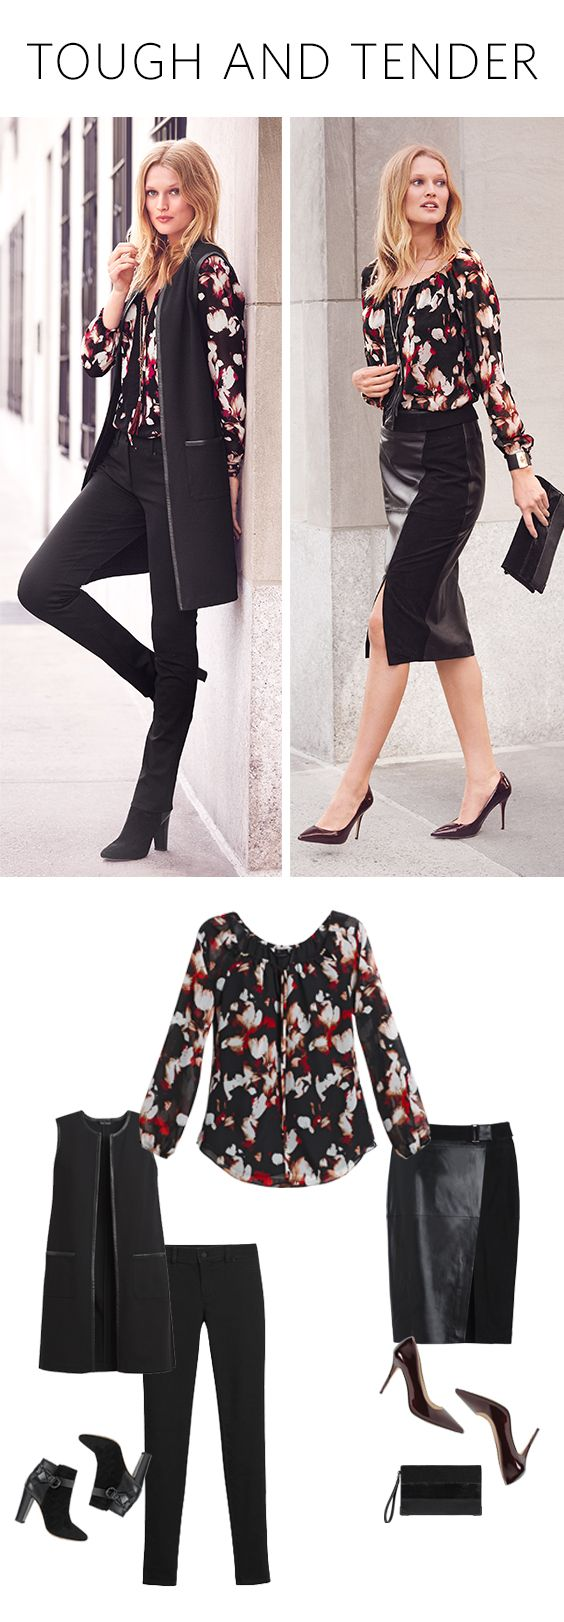 Project laid-back luxury by mixing leather with a soft blouse. This floral blouse will add a touch of romance to these sharply detailed and sleek leather pieces. | White House Black Market